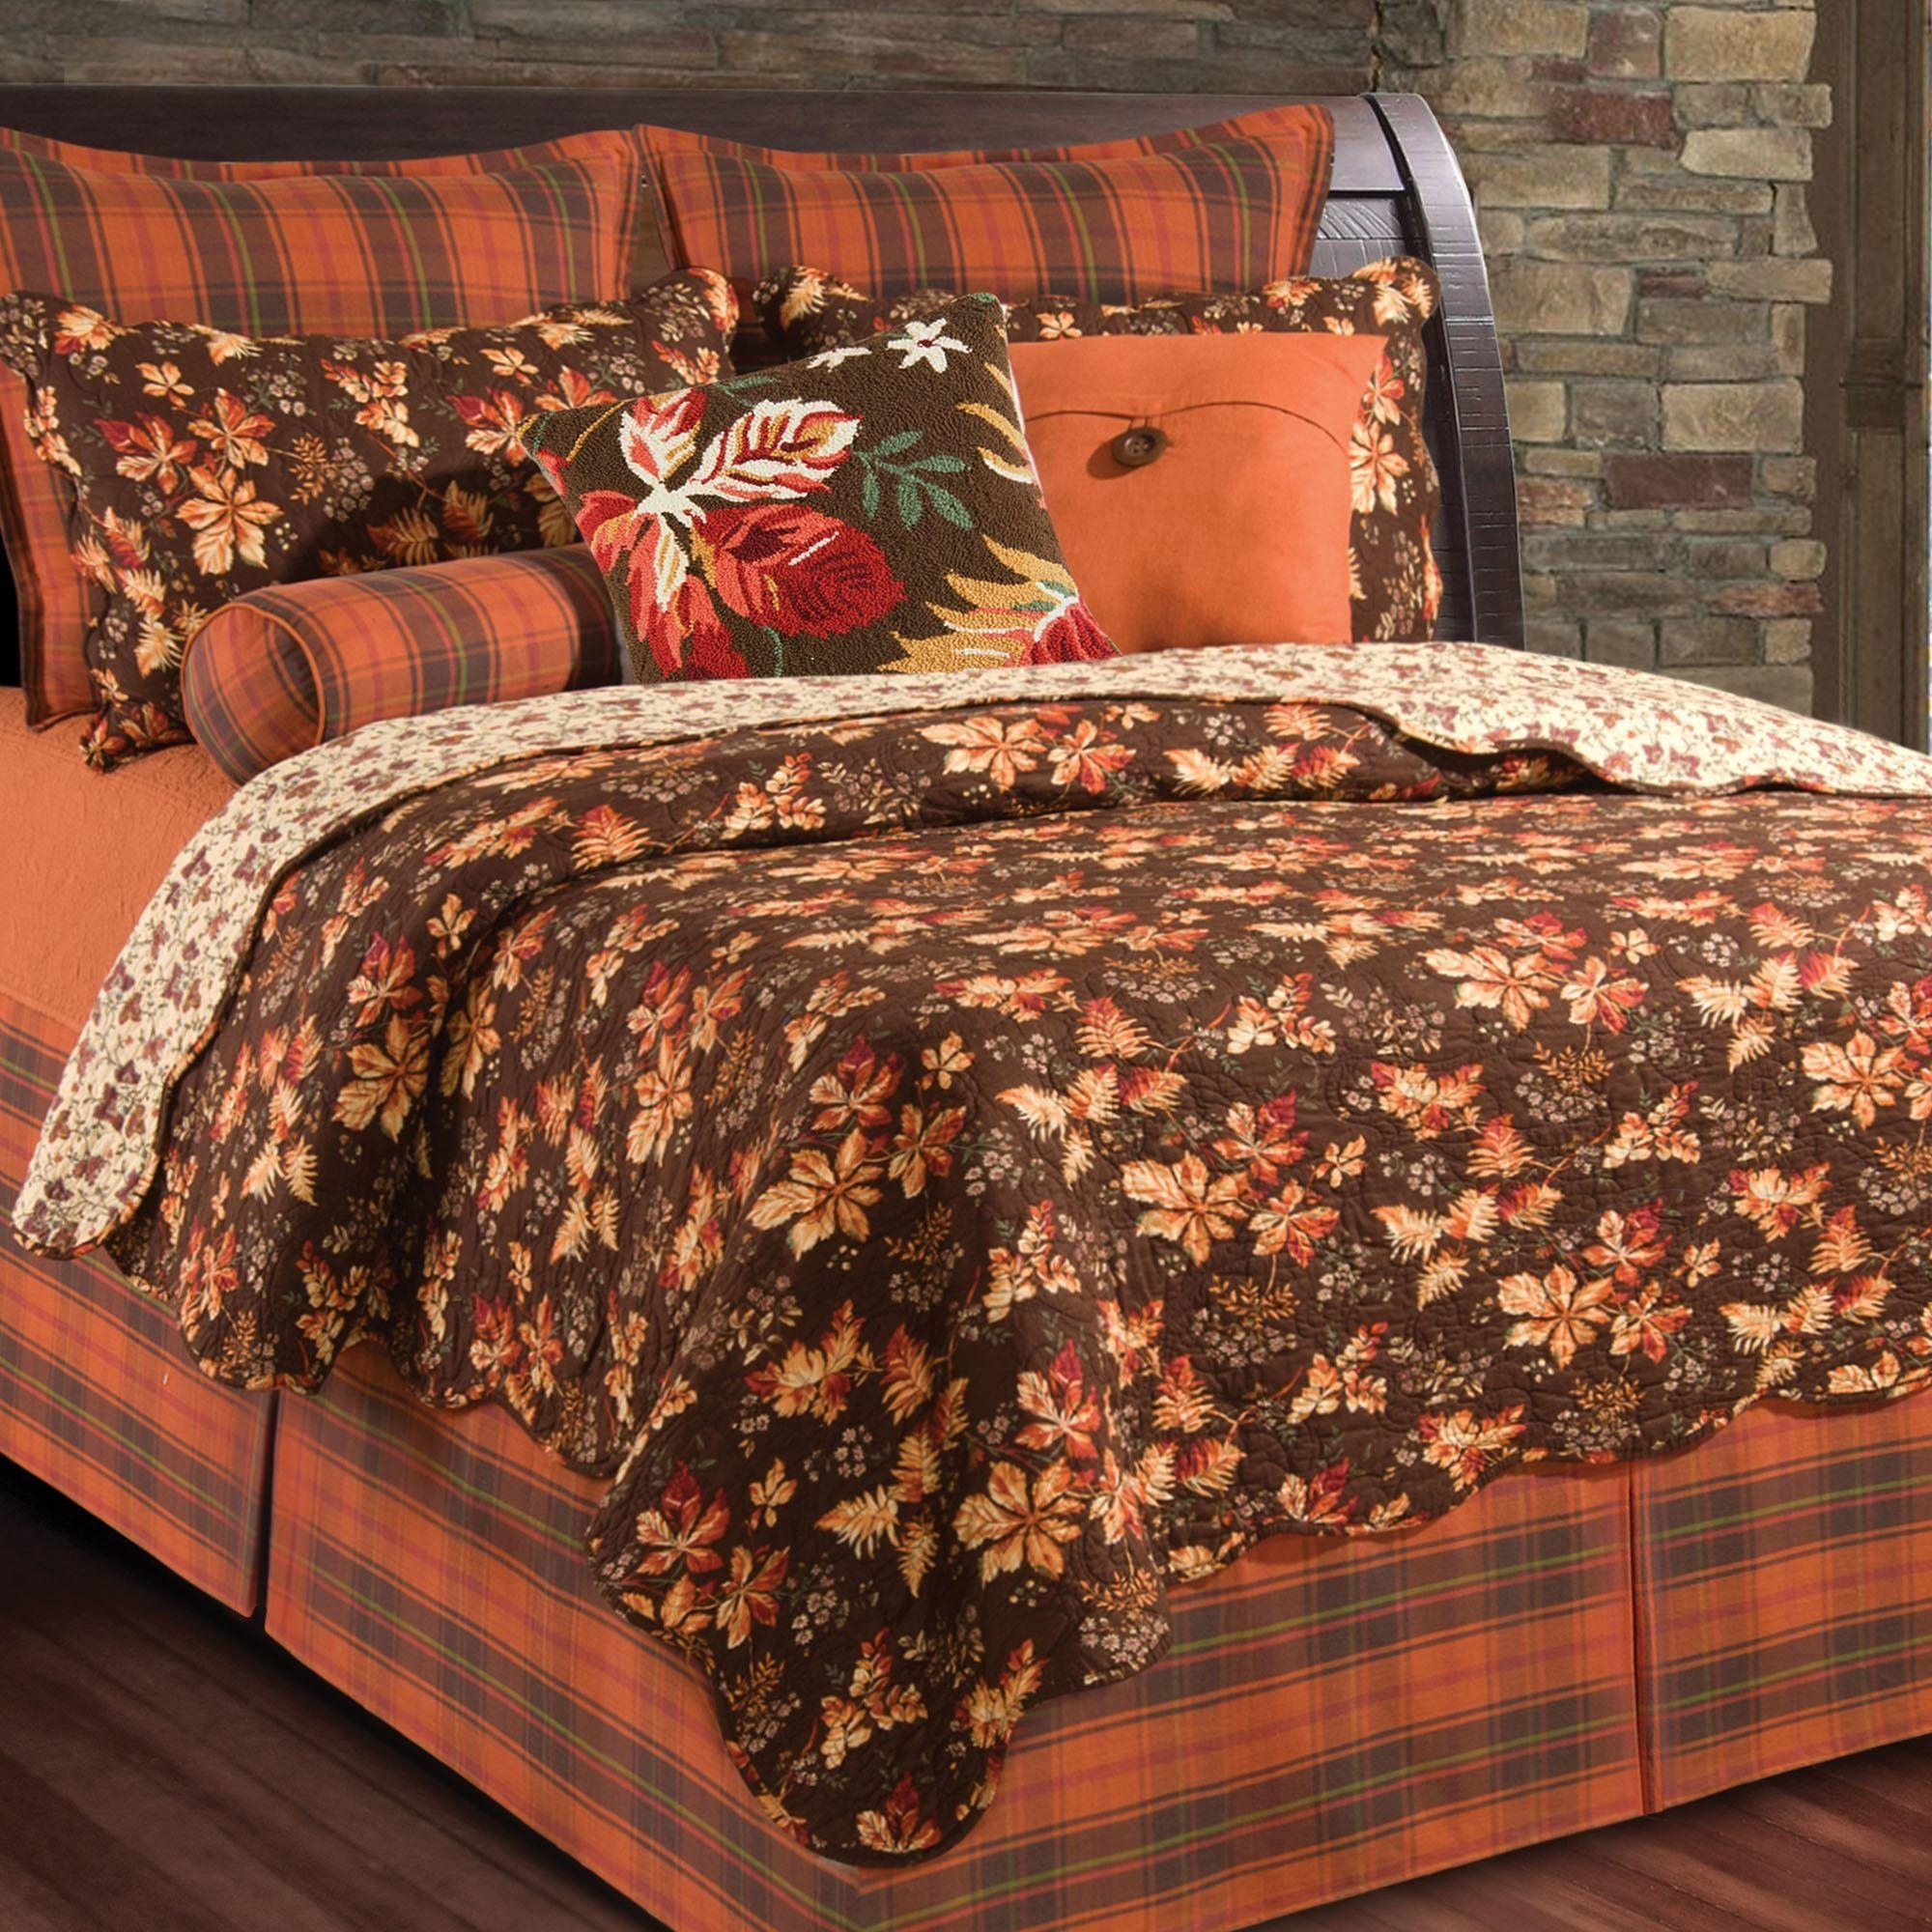 Fall Bedroom Decor Leaves Quilts Bedding Autumn